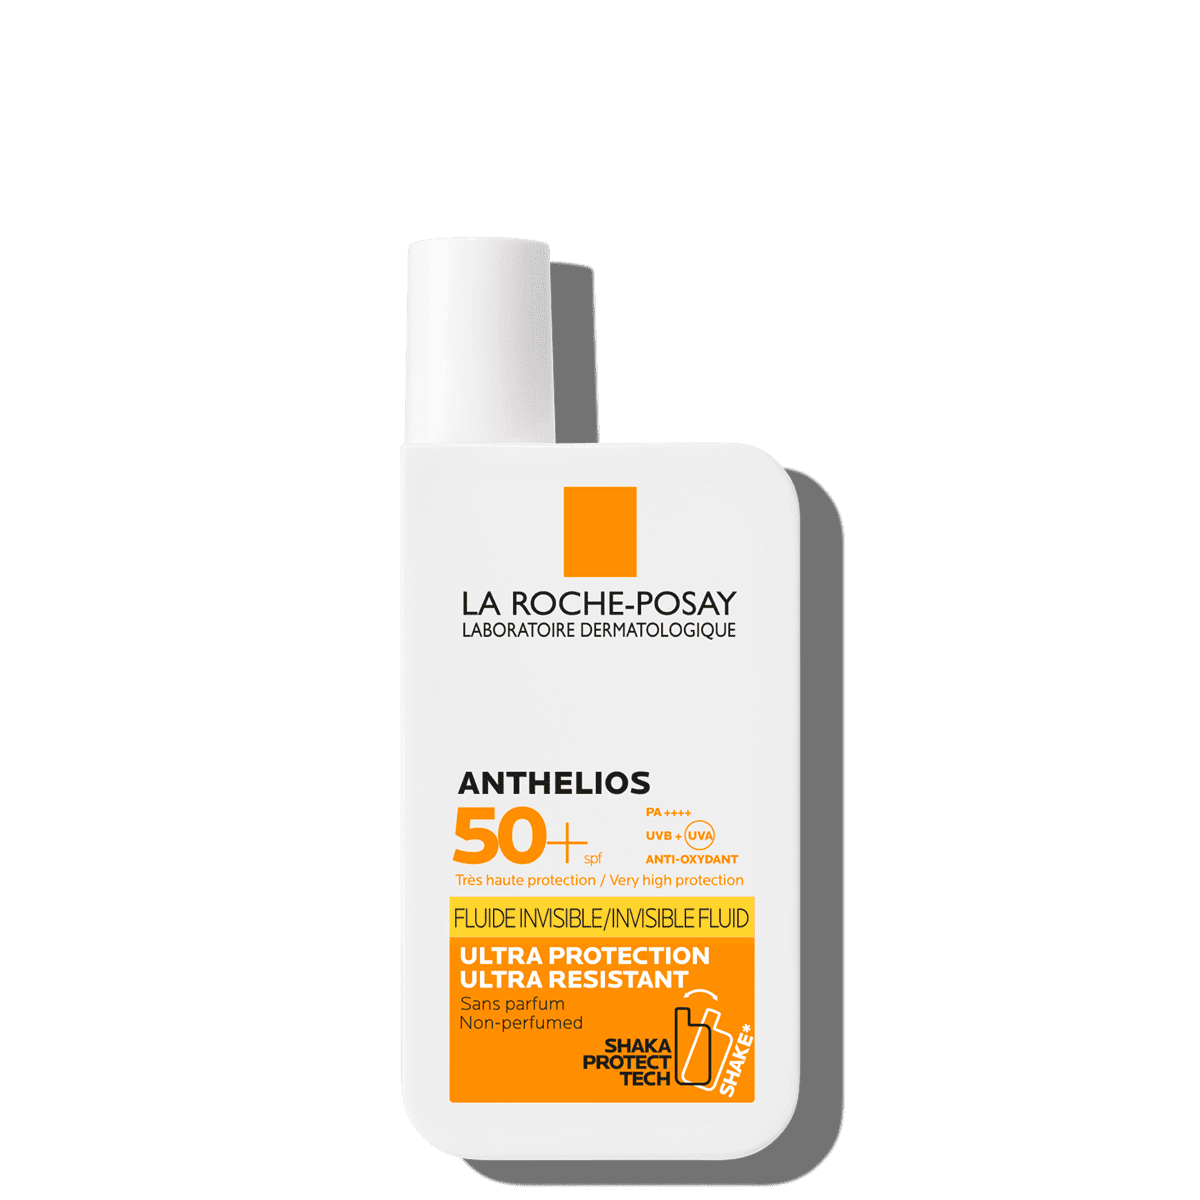 ANTHELIOS Fluido Invisible SPF50+ Sin Perfume